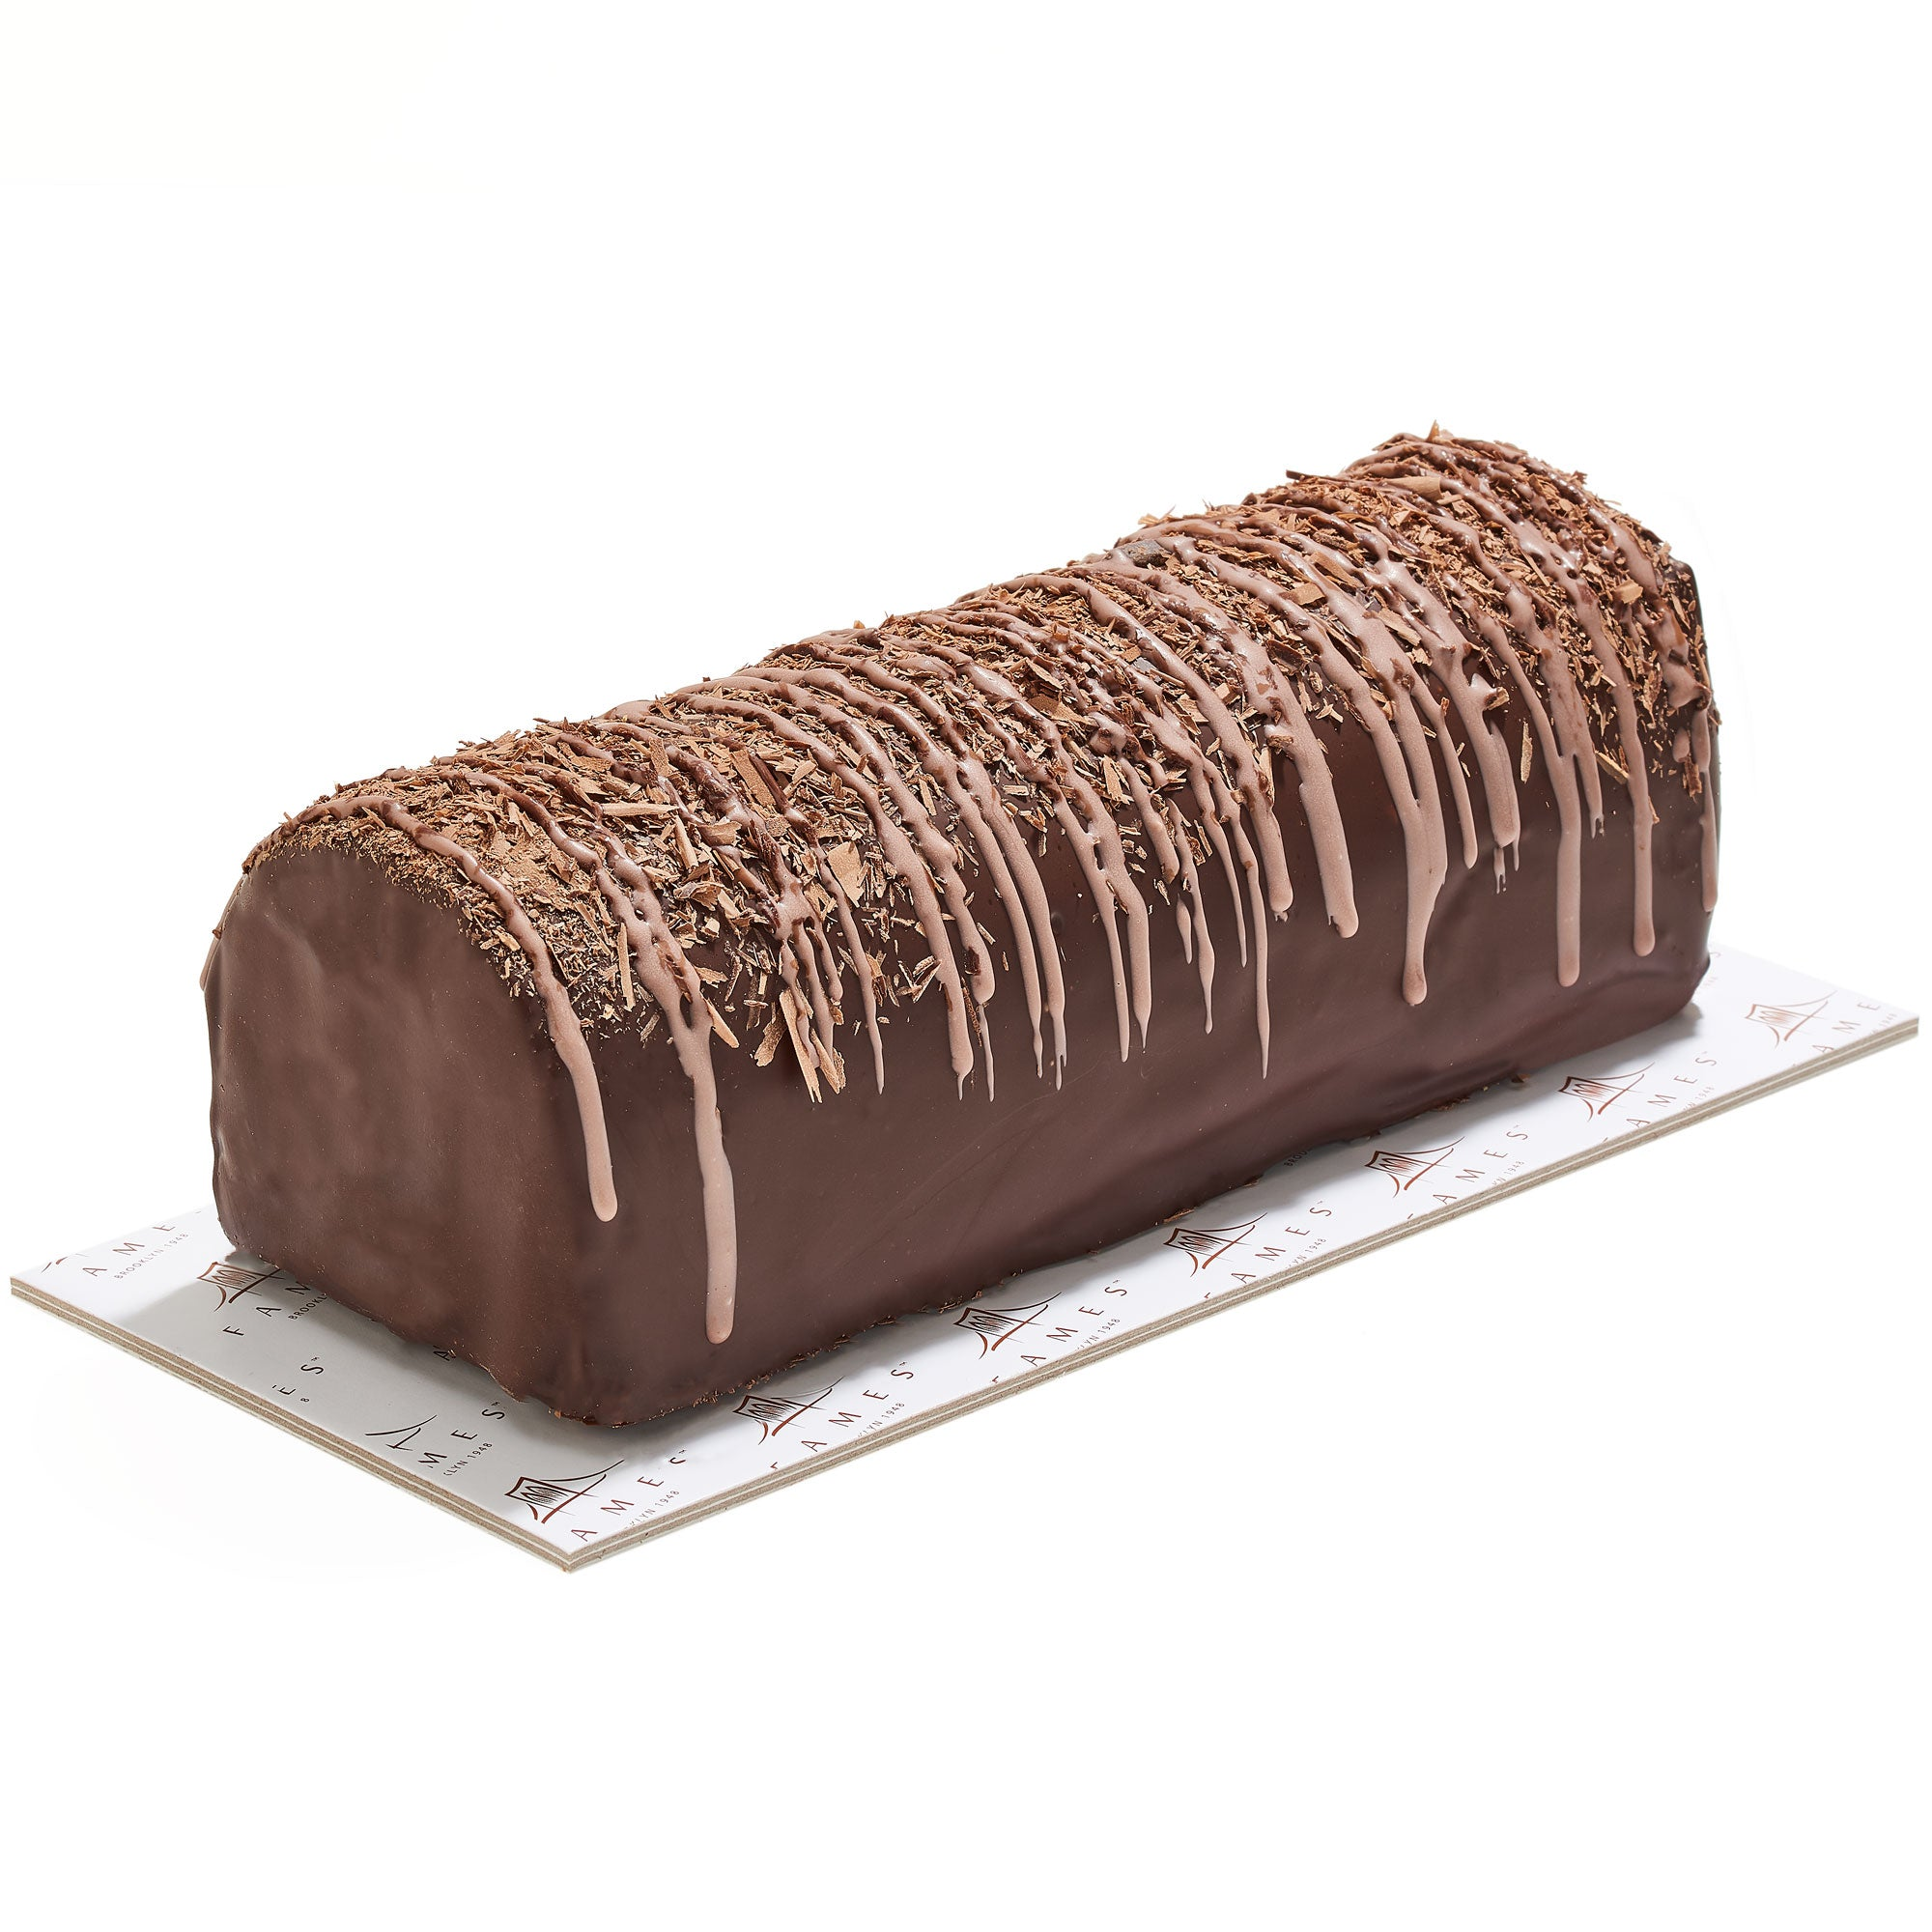 Chocolate fudge log